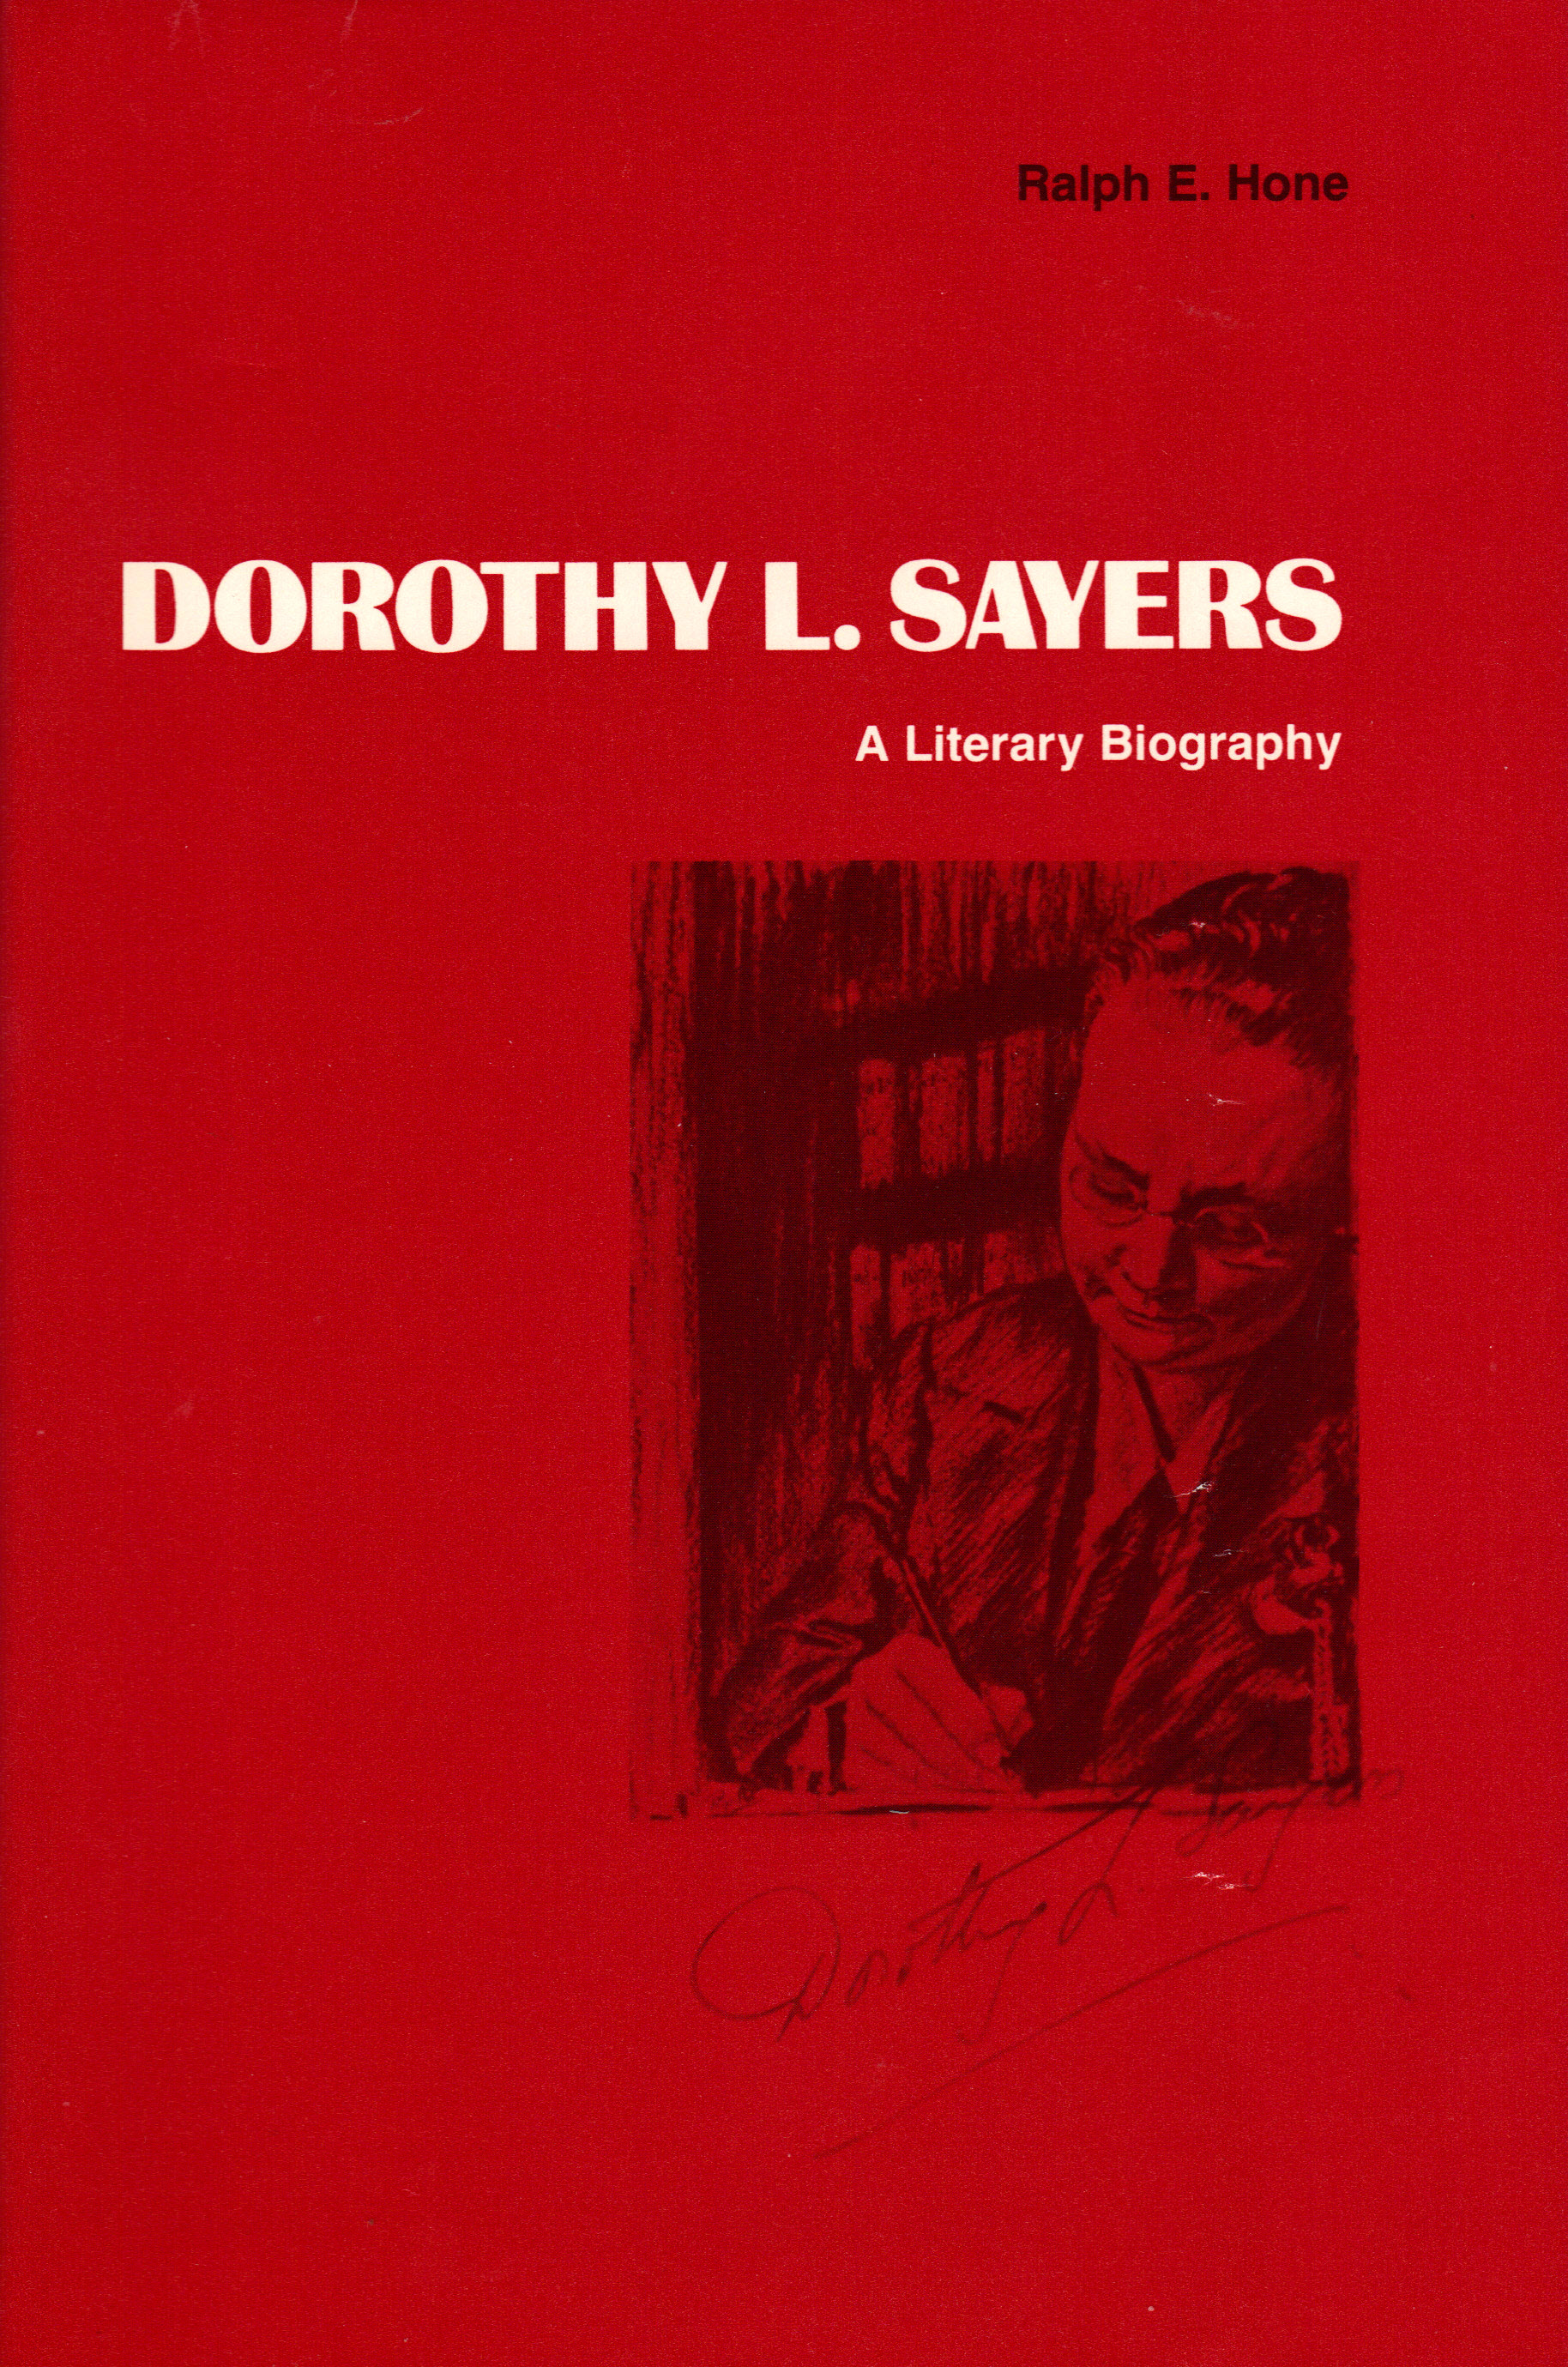 Image for DOROTHY L. SAYERS ~ A Literary Biography